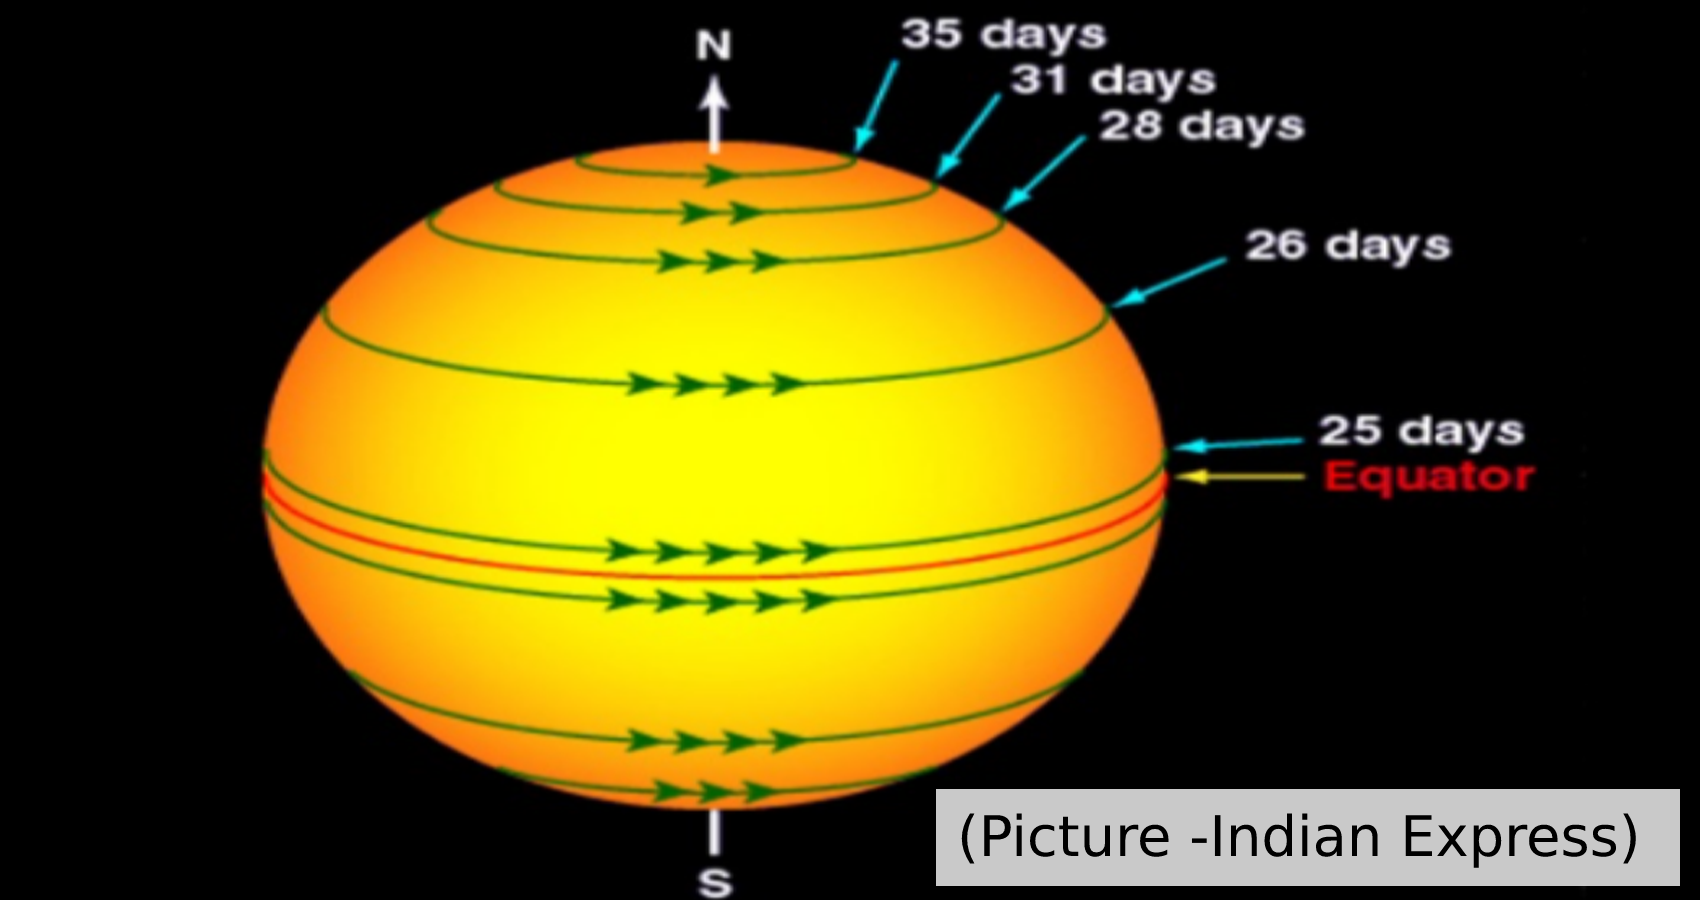 Scientists Design Rotation Profile Of The Sun Based On Century-Old Sunspot Images